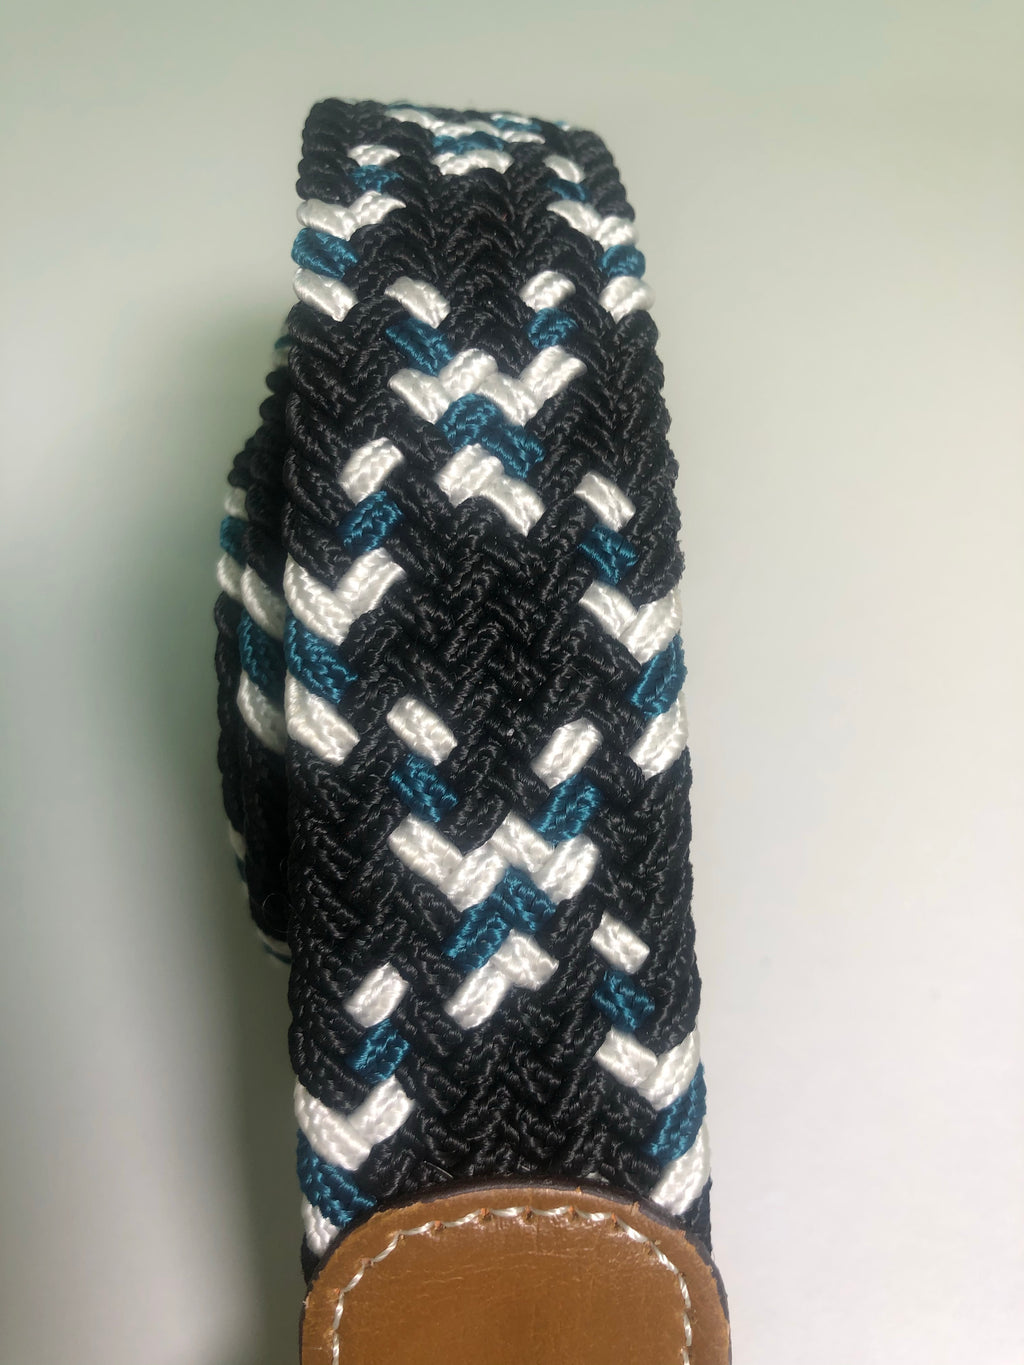 Woven Belt - Black, White & Teal